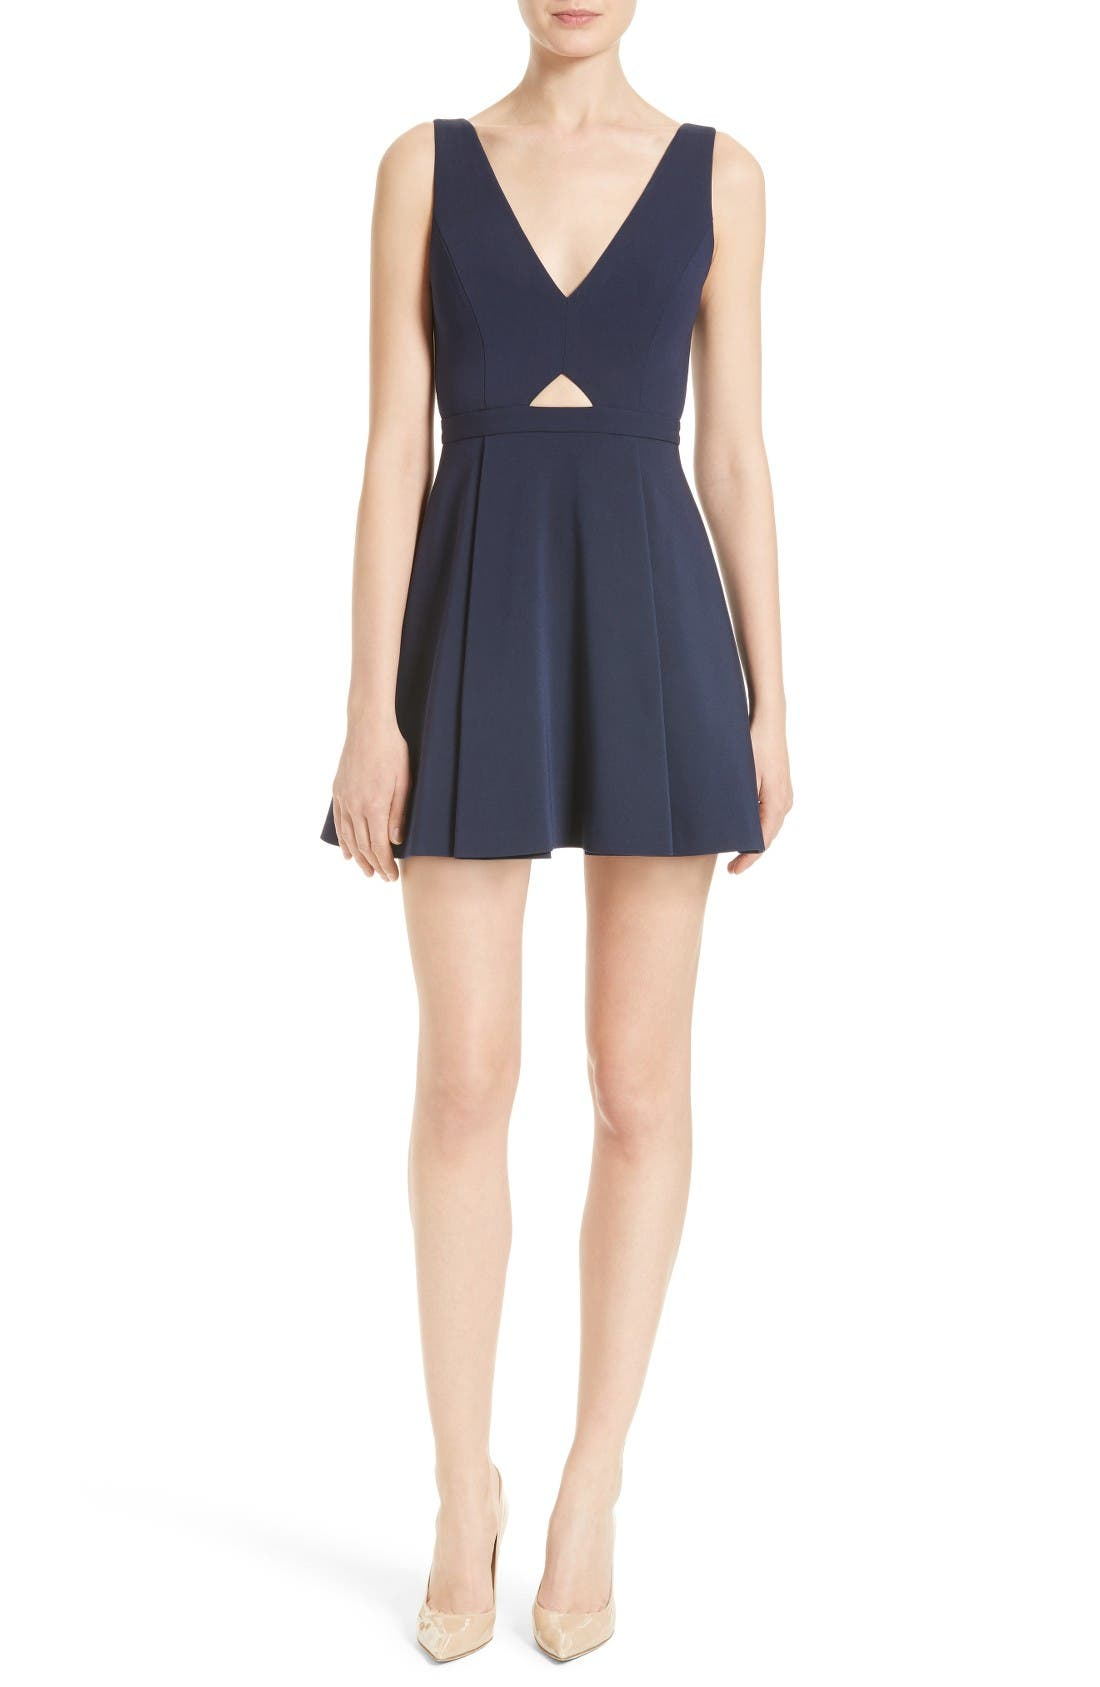 ALICE + OLIVIA Nina Cutout Fit & Flare